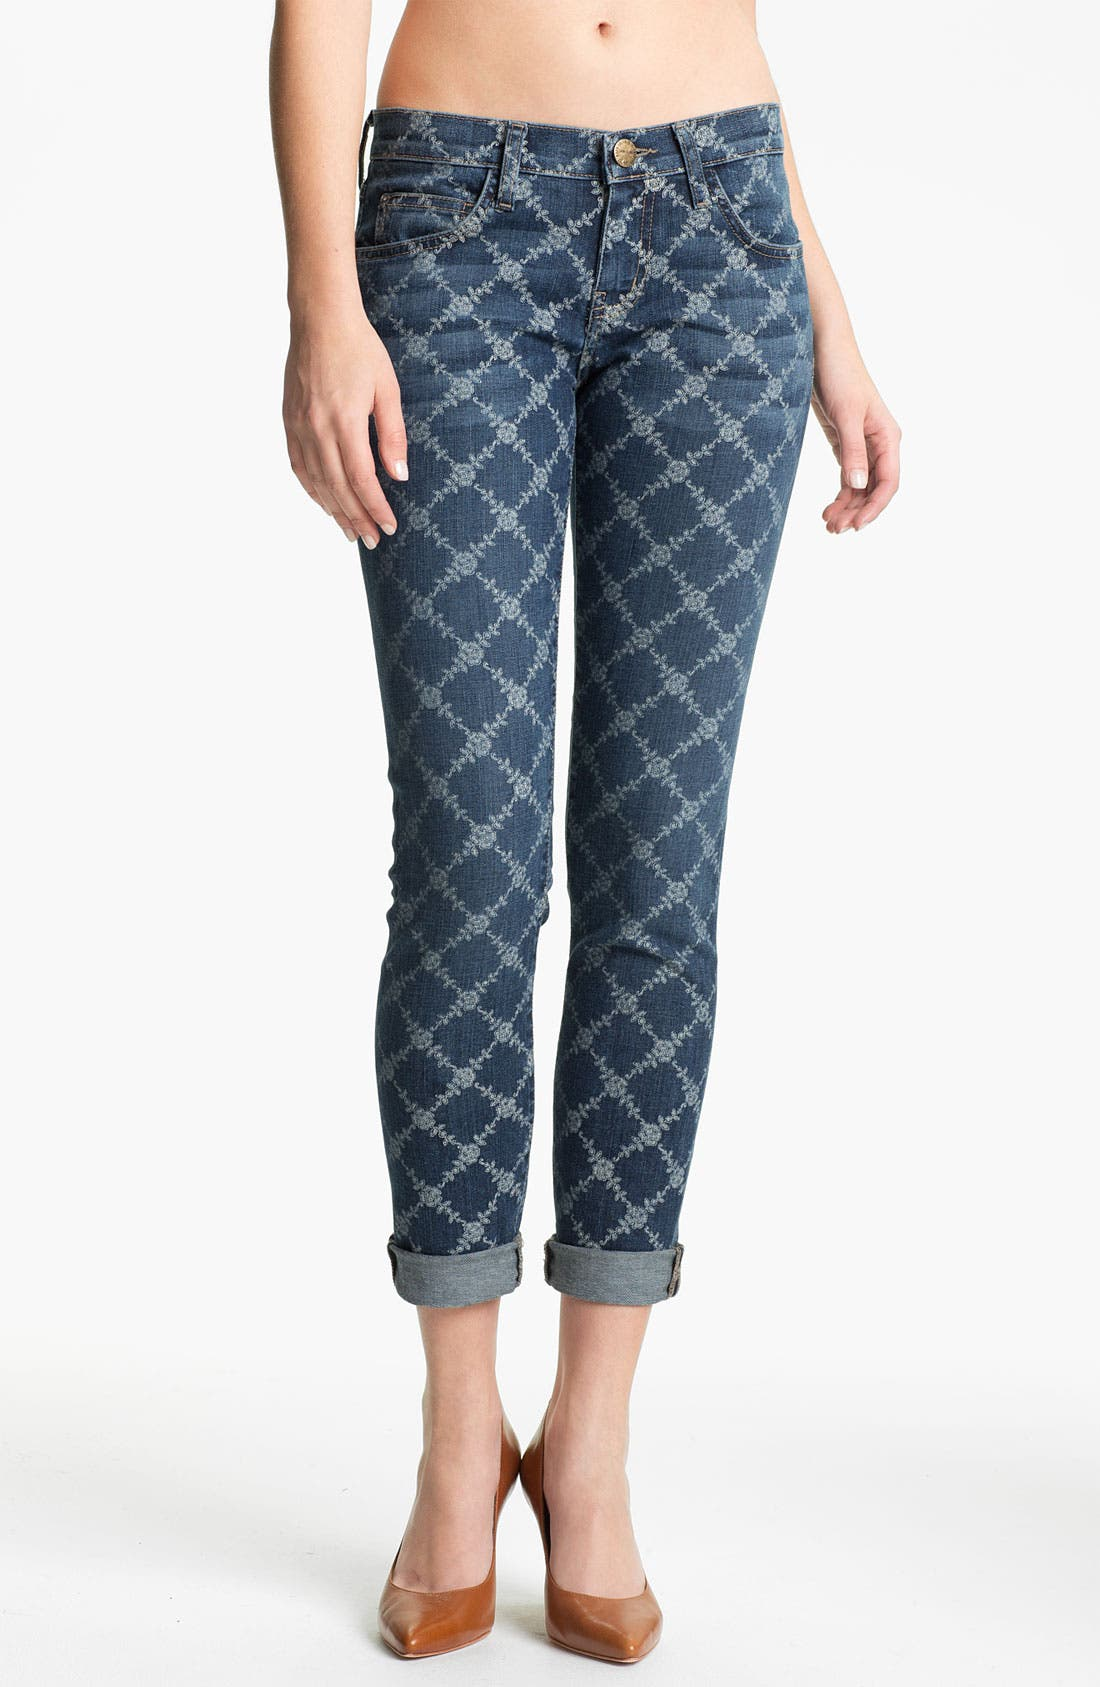 Main Image - Current/Elliott 'The Rolled' Print Stretch Jeans (Indigo Rose Lattice)